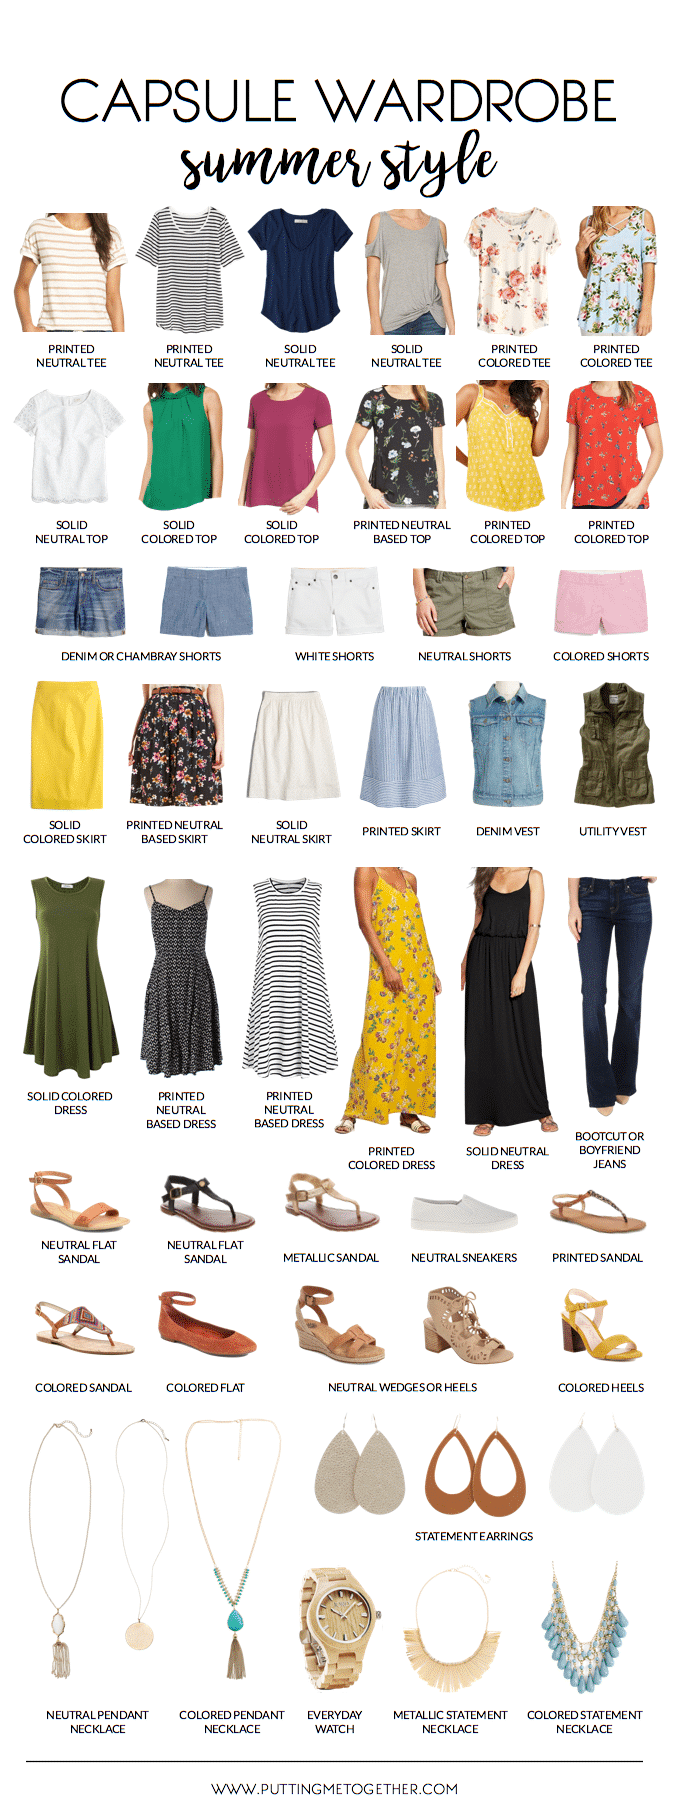 My Summer Capsule Wardrobe + 65 Cute Summer Outfits 4f465230f